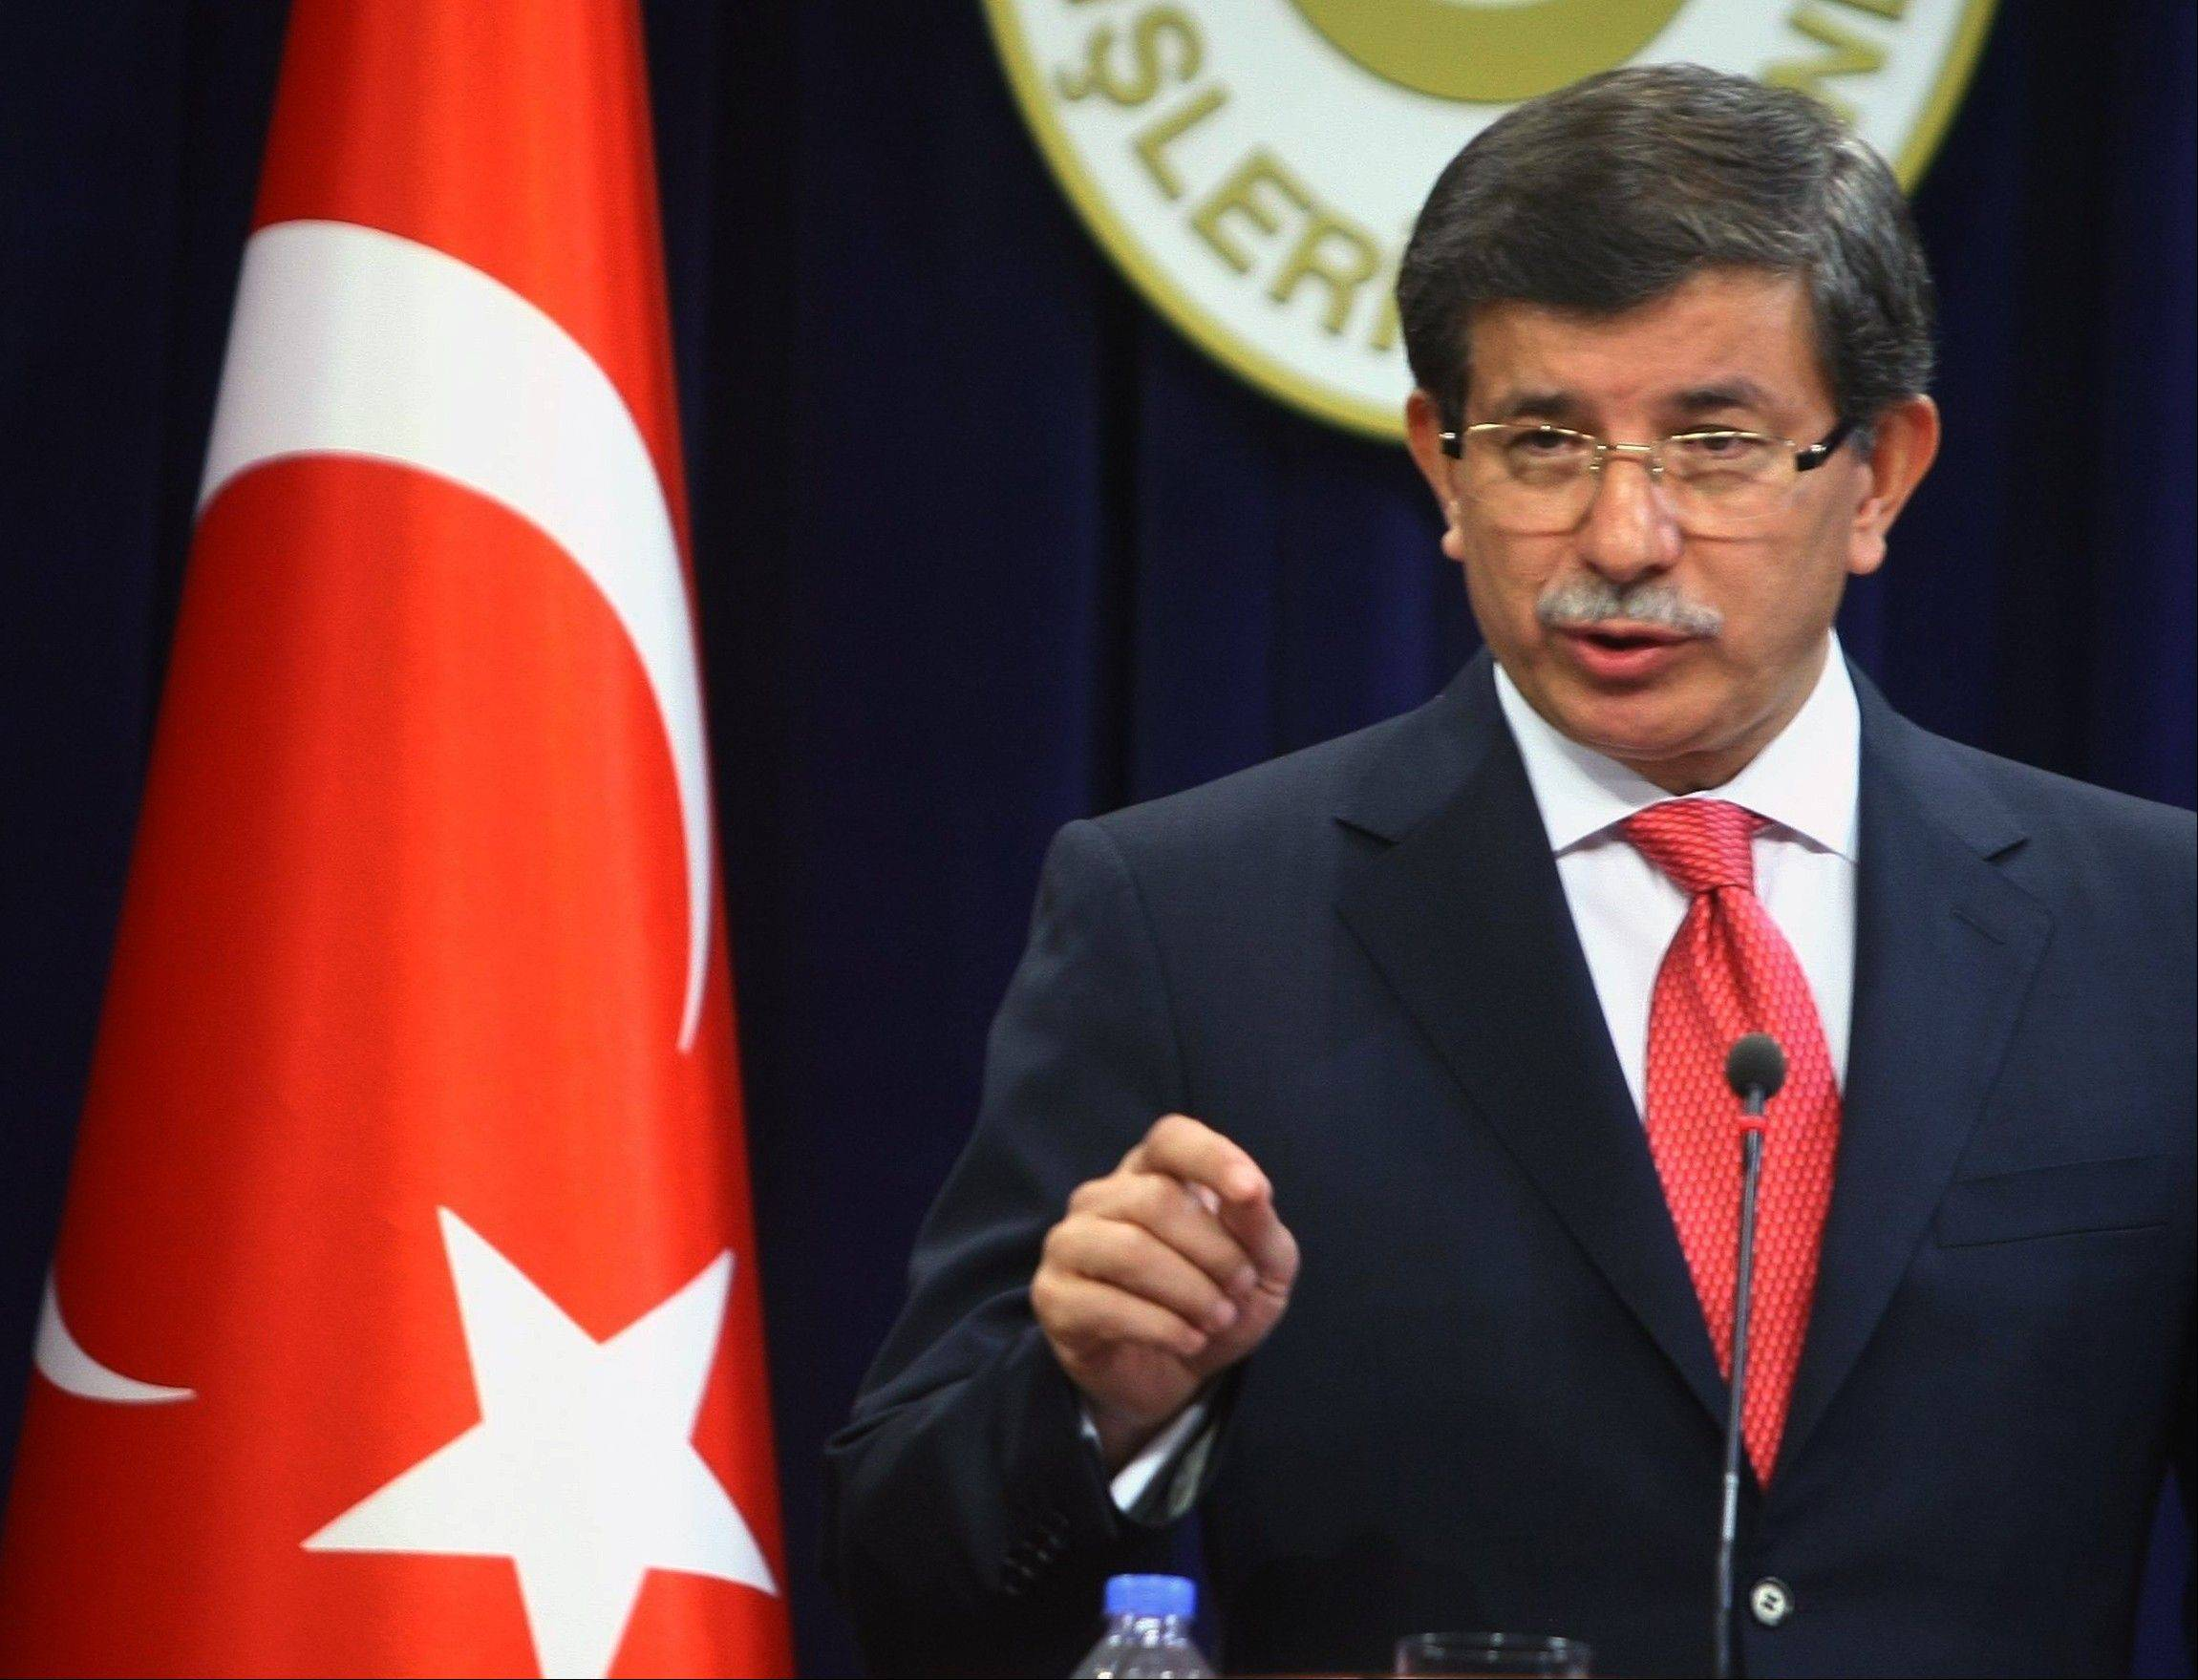 Turkish Foreign Minister Ahmet Davutoglu speaks to the media in Ankara, Turkey, Friday, Sept. 2, 2011. Turkey said Friday it was expelling the Israeli ambassador and cutting military ties with Israel over the last year's deadly raid on a Gaza-bound aid flotilla, further souring the key Mideast relationship between Turkey and Israel. Davutoglu said Turkey was downgrading diplomatic ties to the level of second secretary and that the ambassador and other high-level diplomats would leave the capital Ankara by Wednesday.(AP Photo)